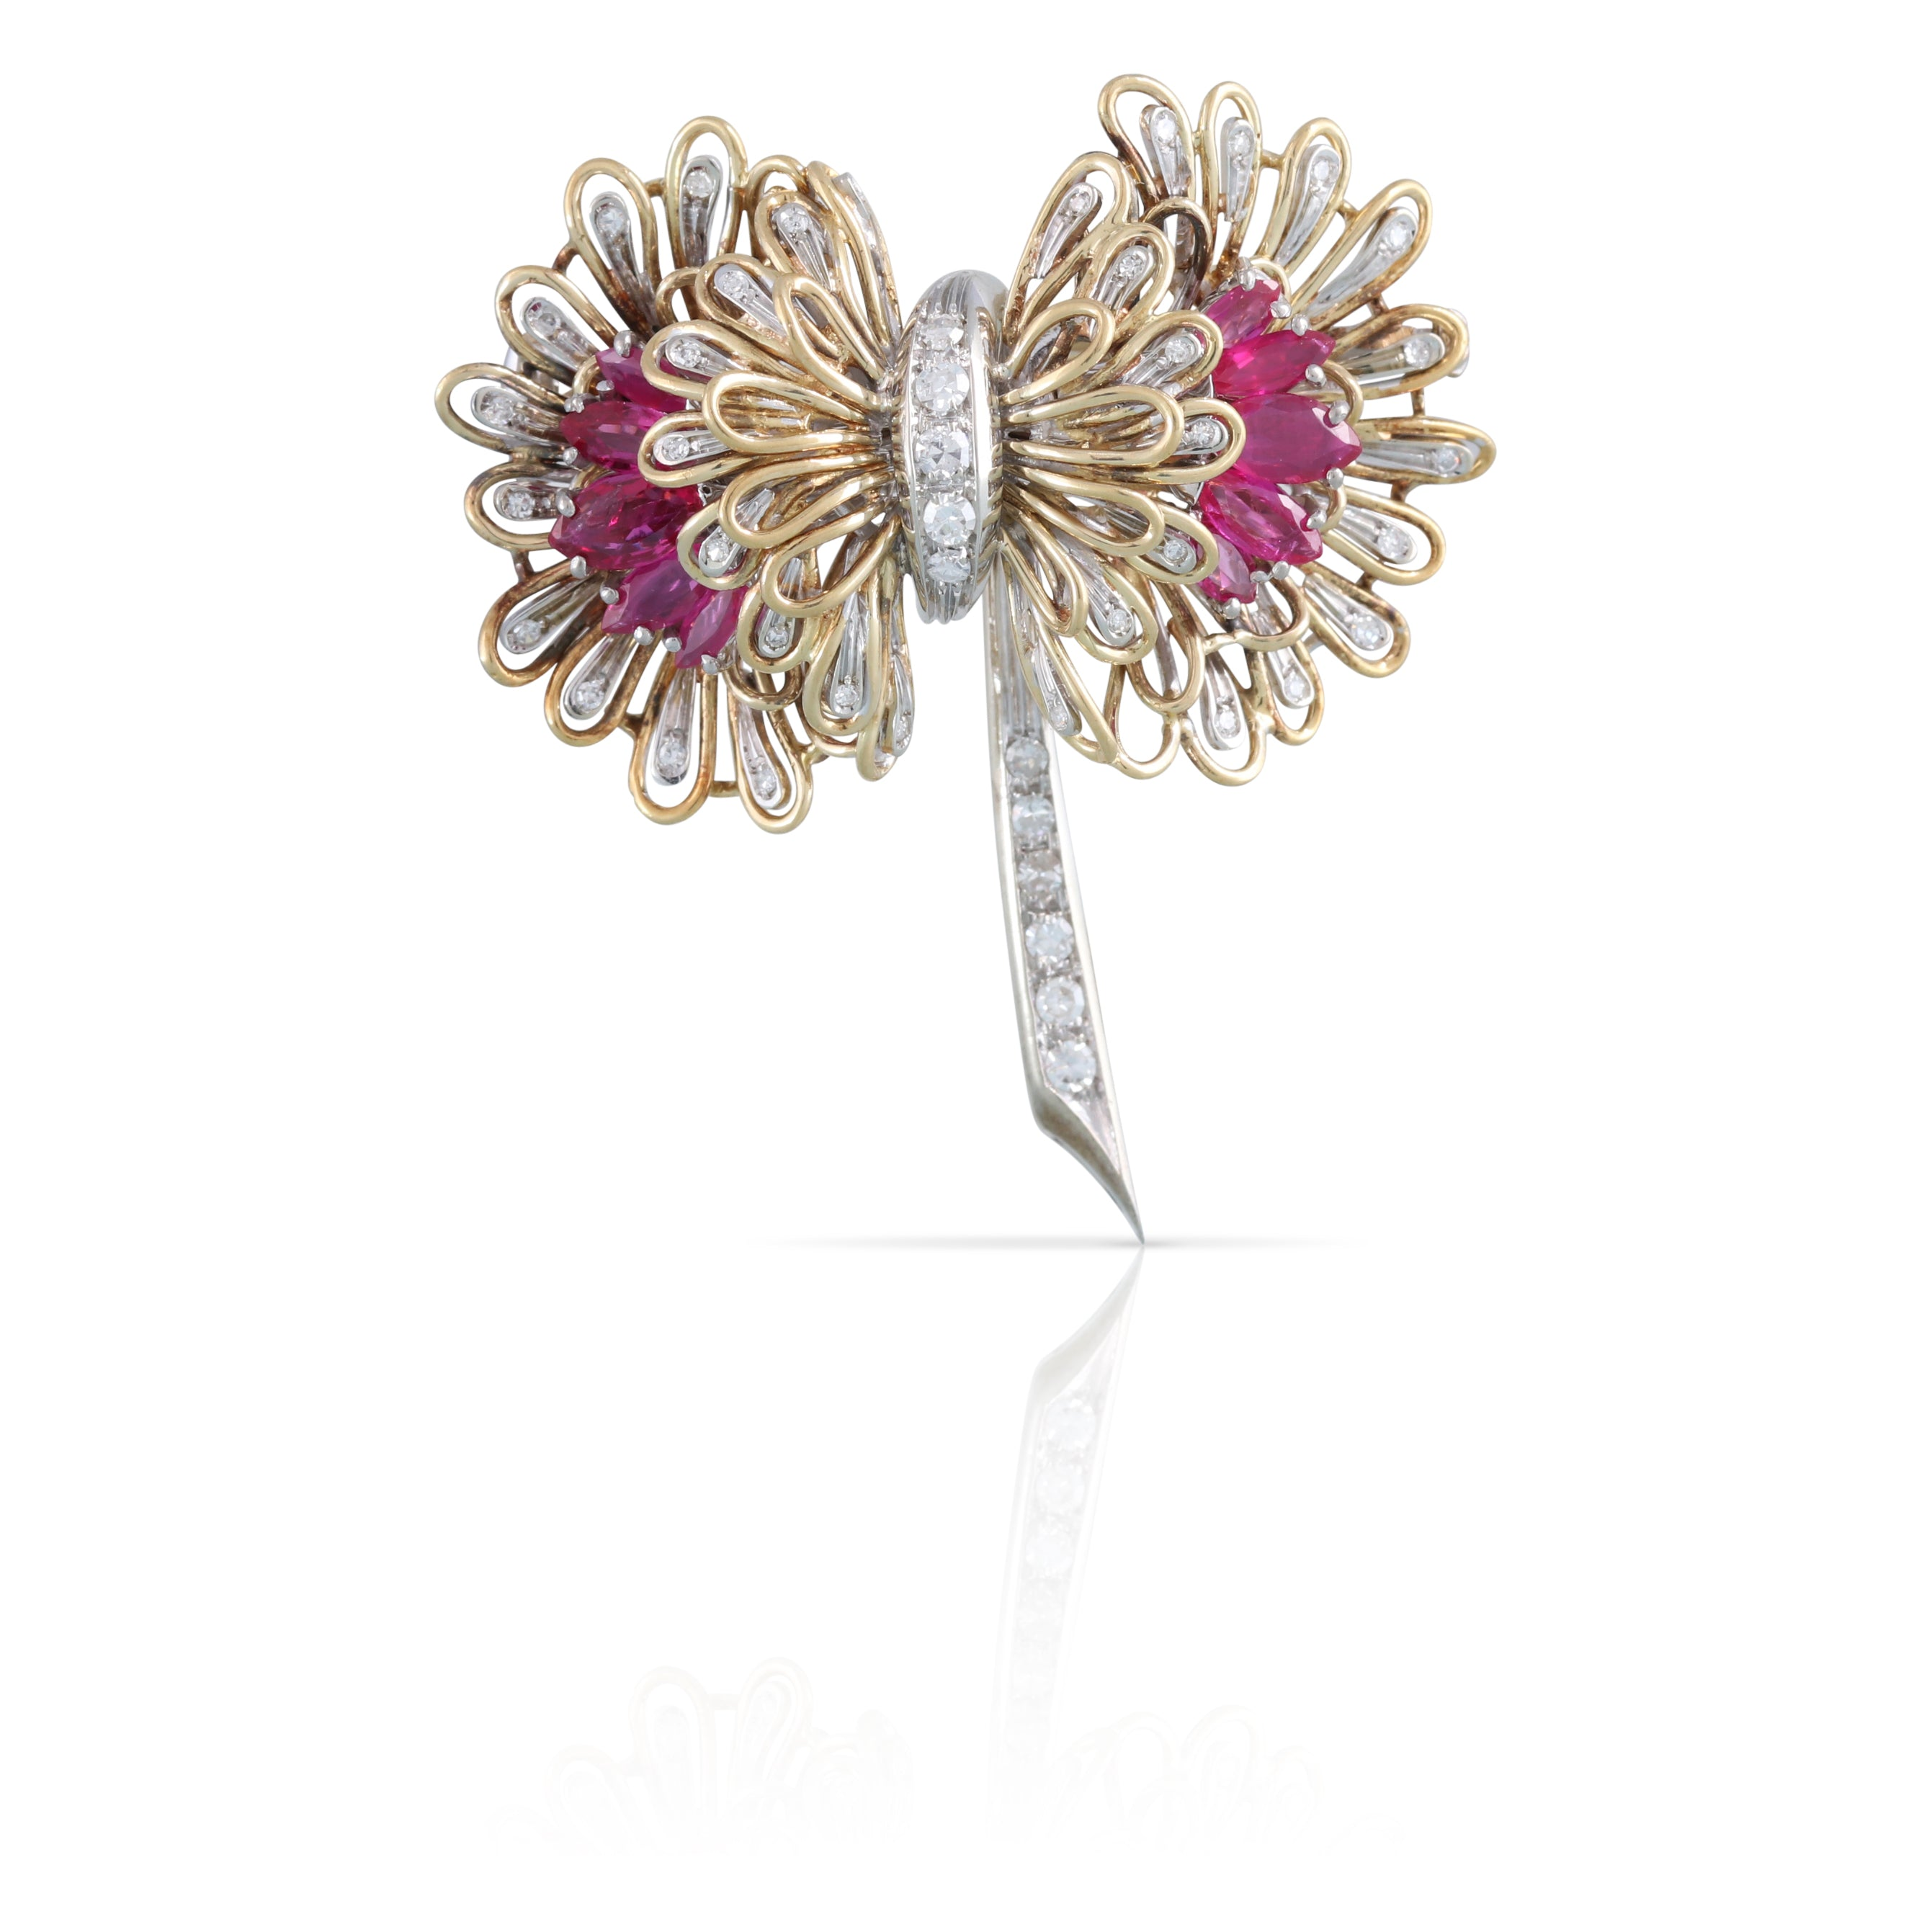 Ruby and Diamond Brooch | The Bonnie